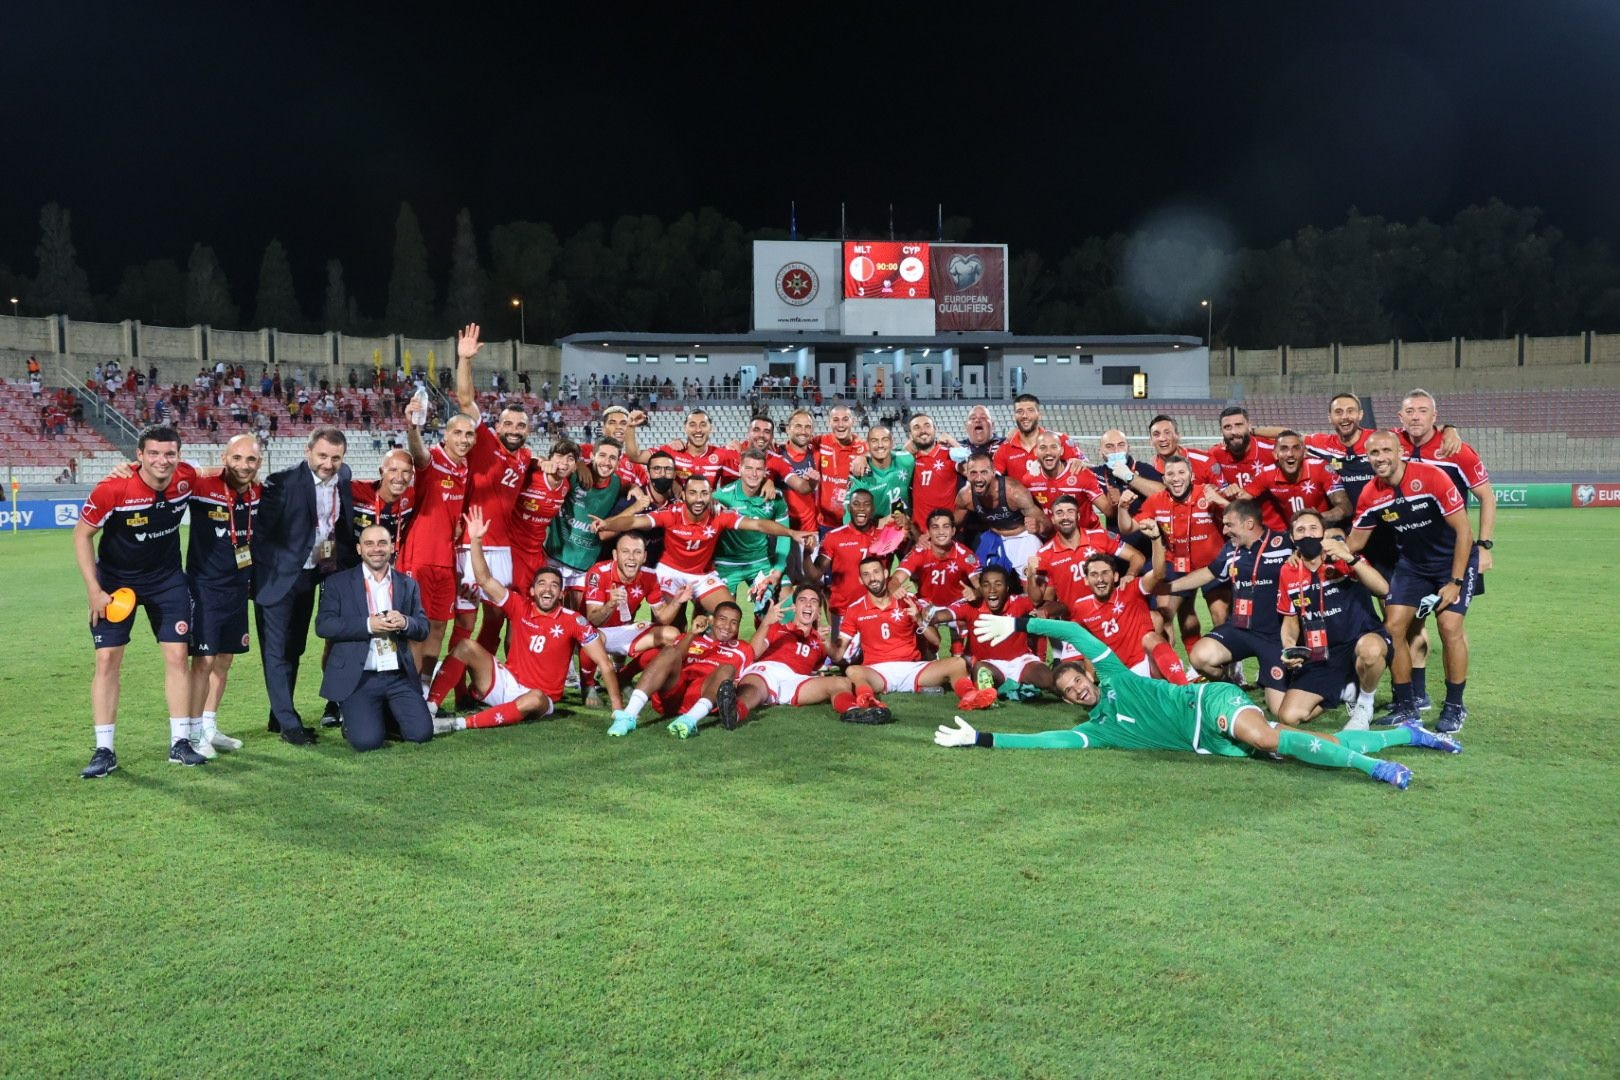 Read more about the article Malta wins first World Cup Qualifier in 8 years, beating Cyprus 3-0